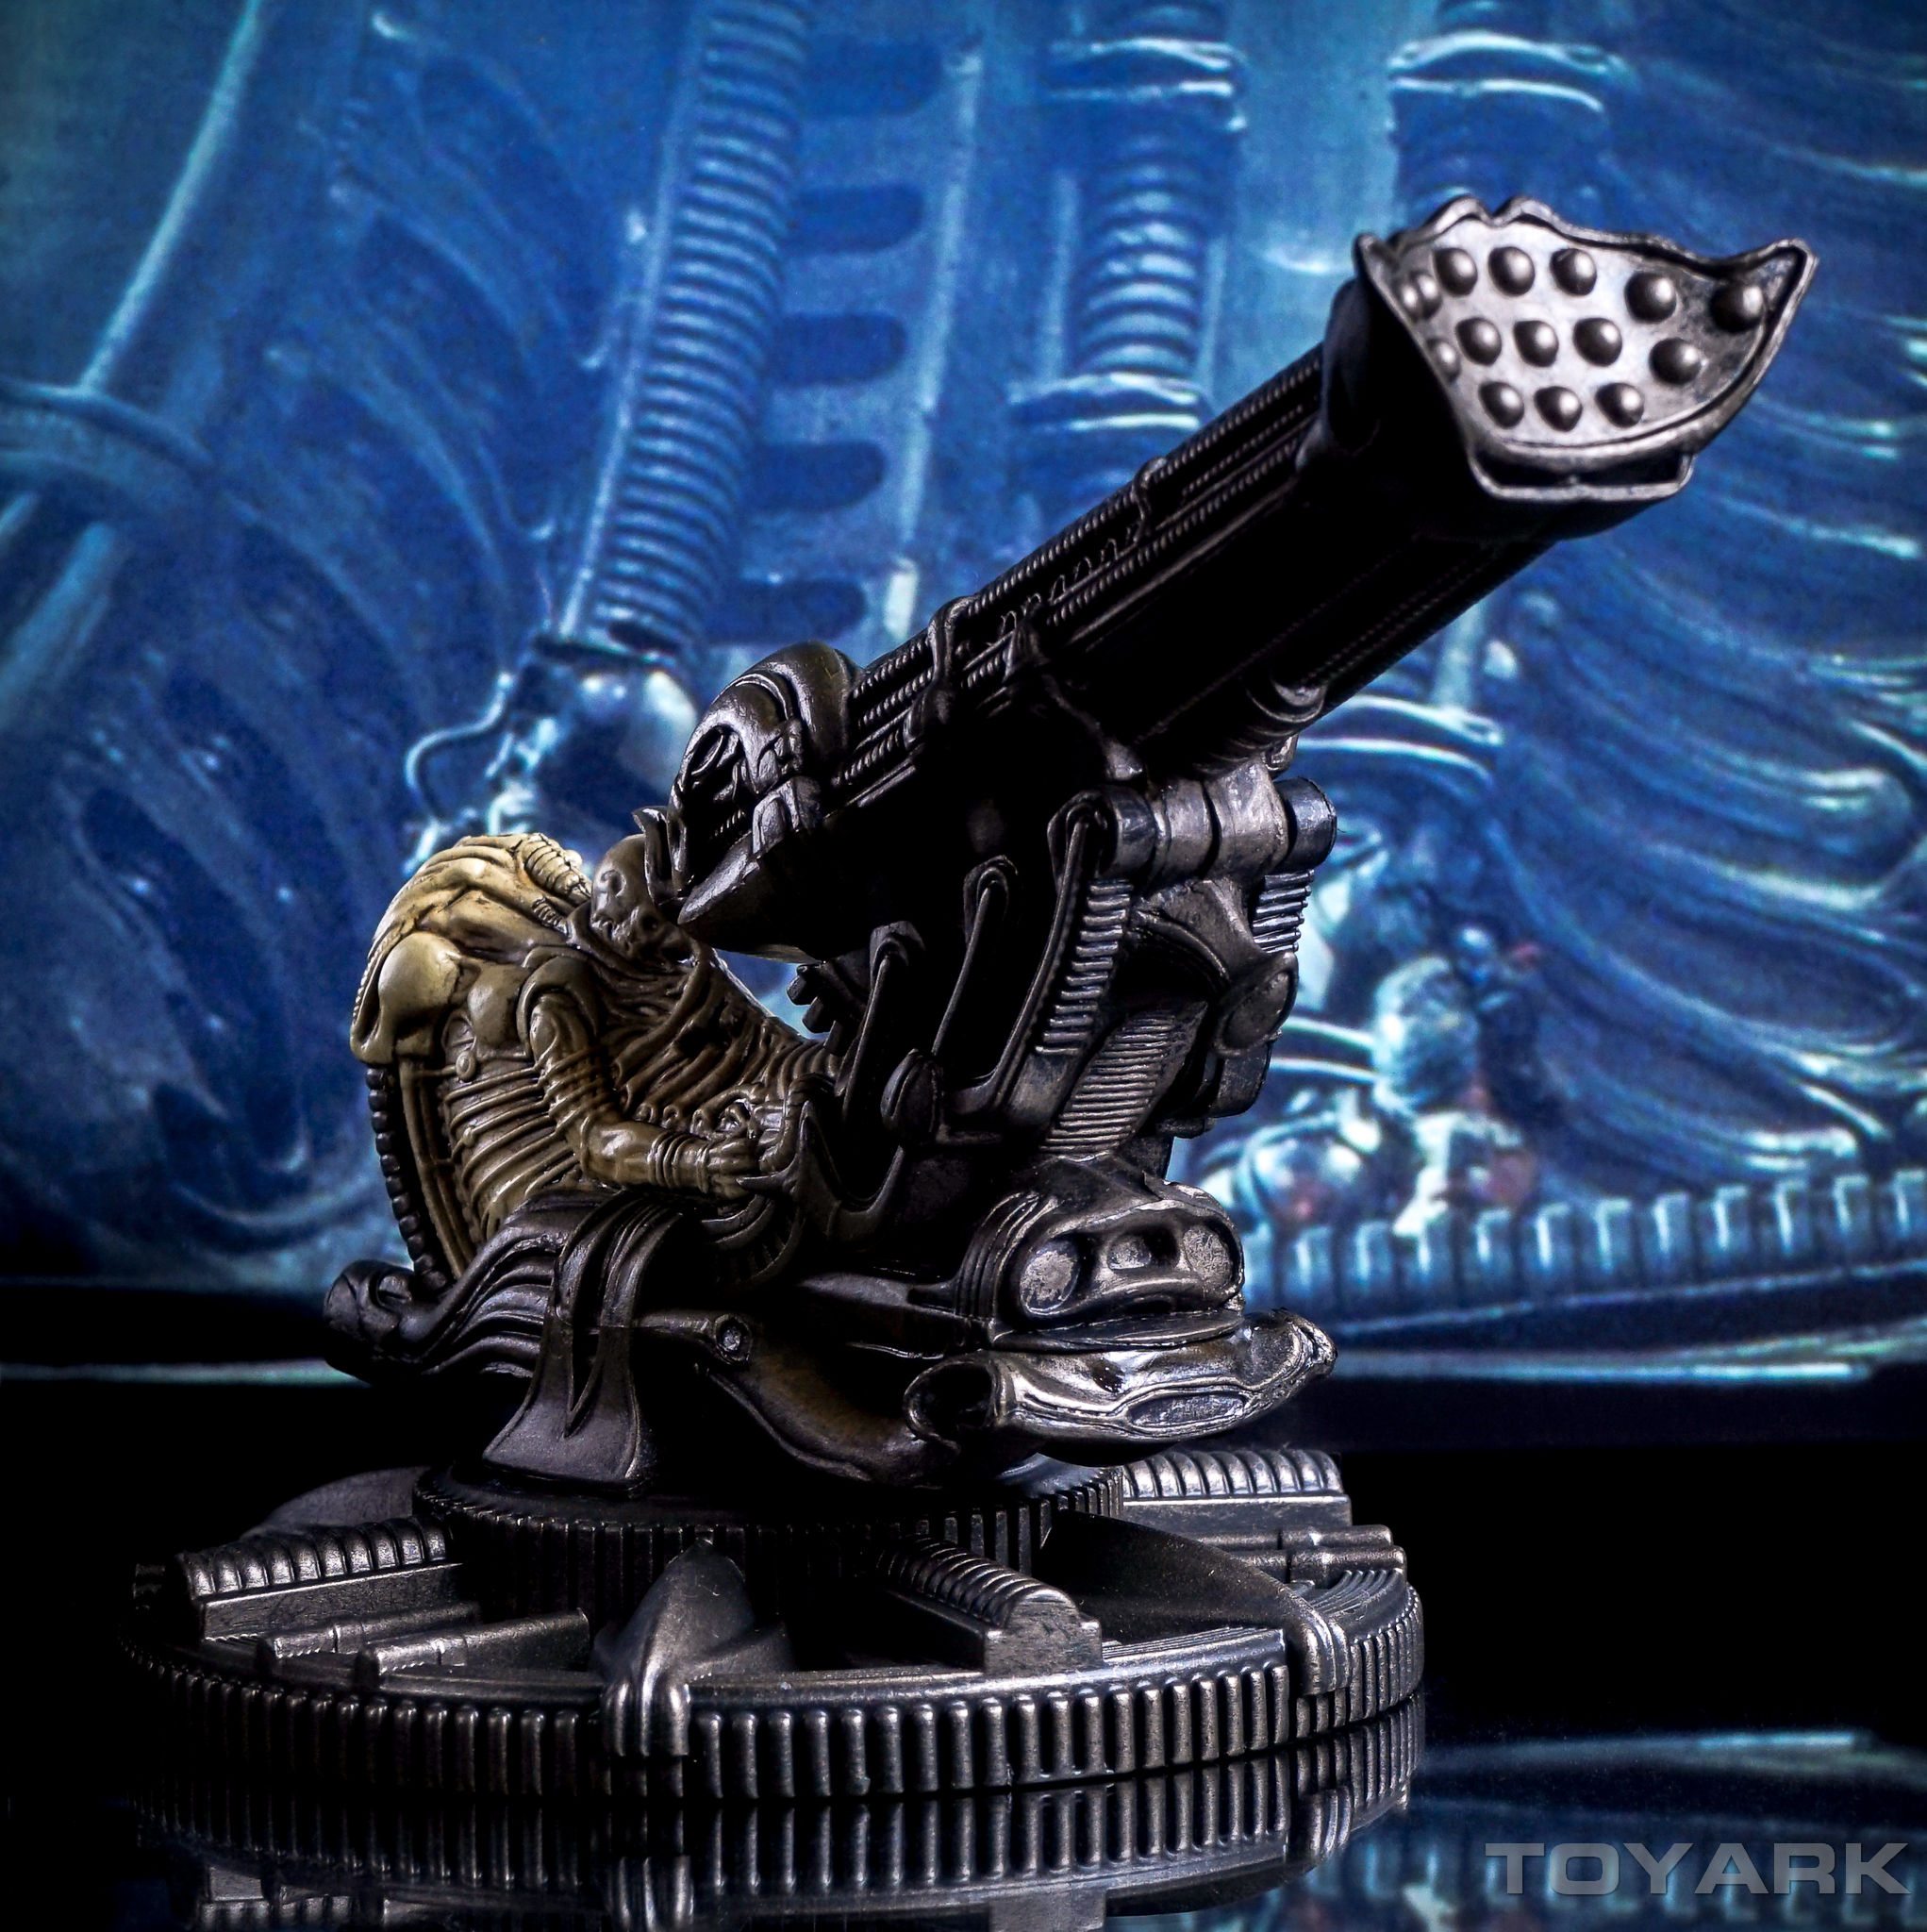 http://news.toyark.com/wp-content/uploads/sites/4/2016/04/NECA-Cinemachines-Aliens-Series-044.jpg